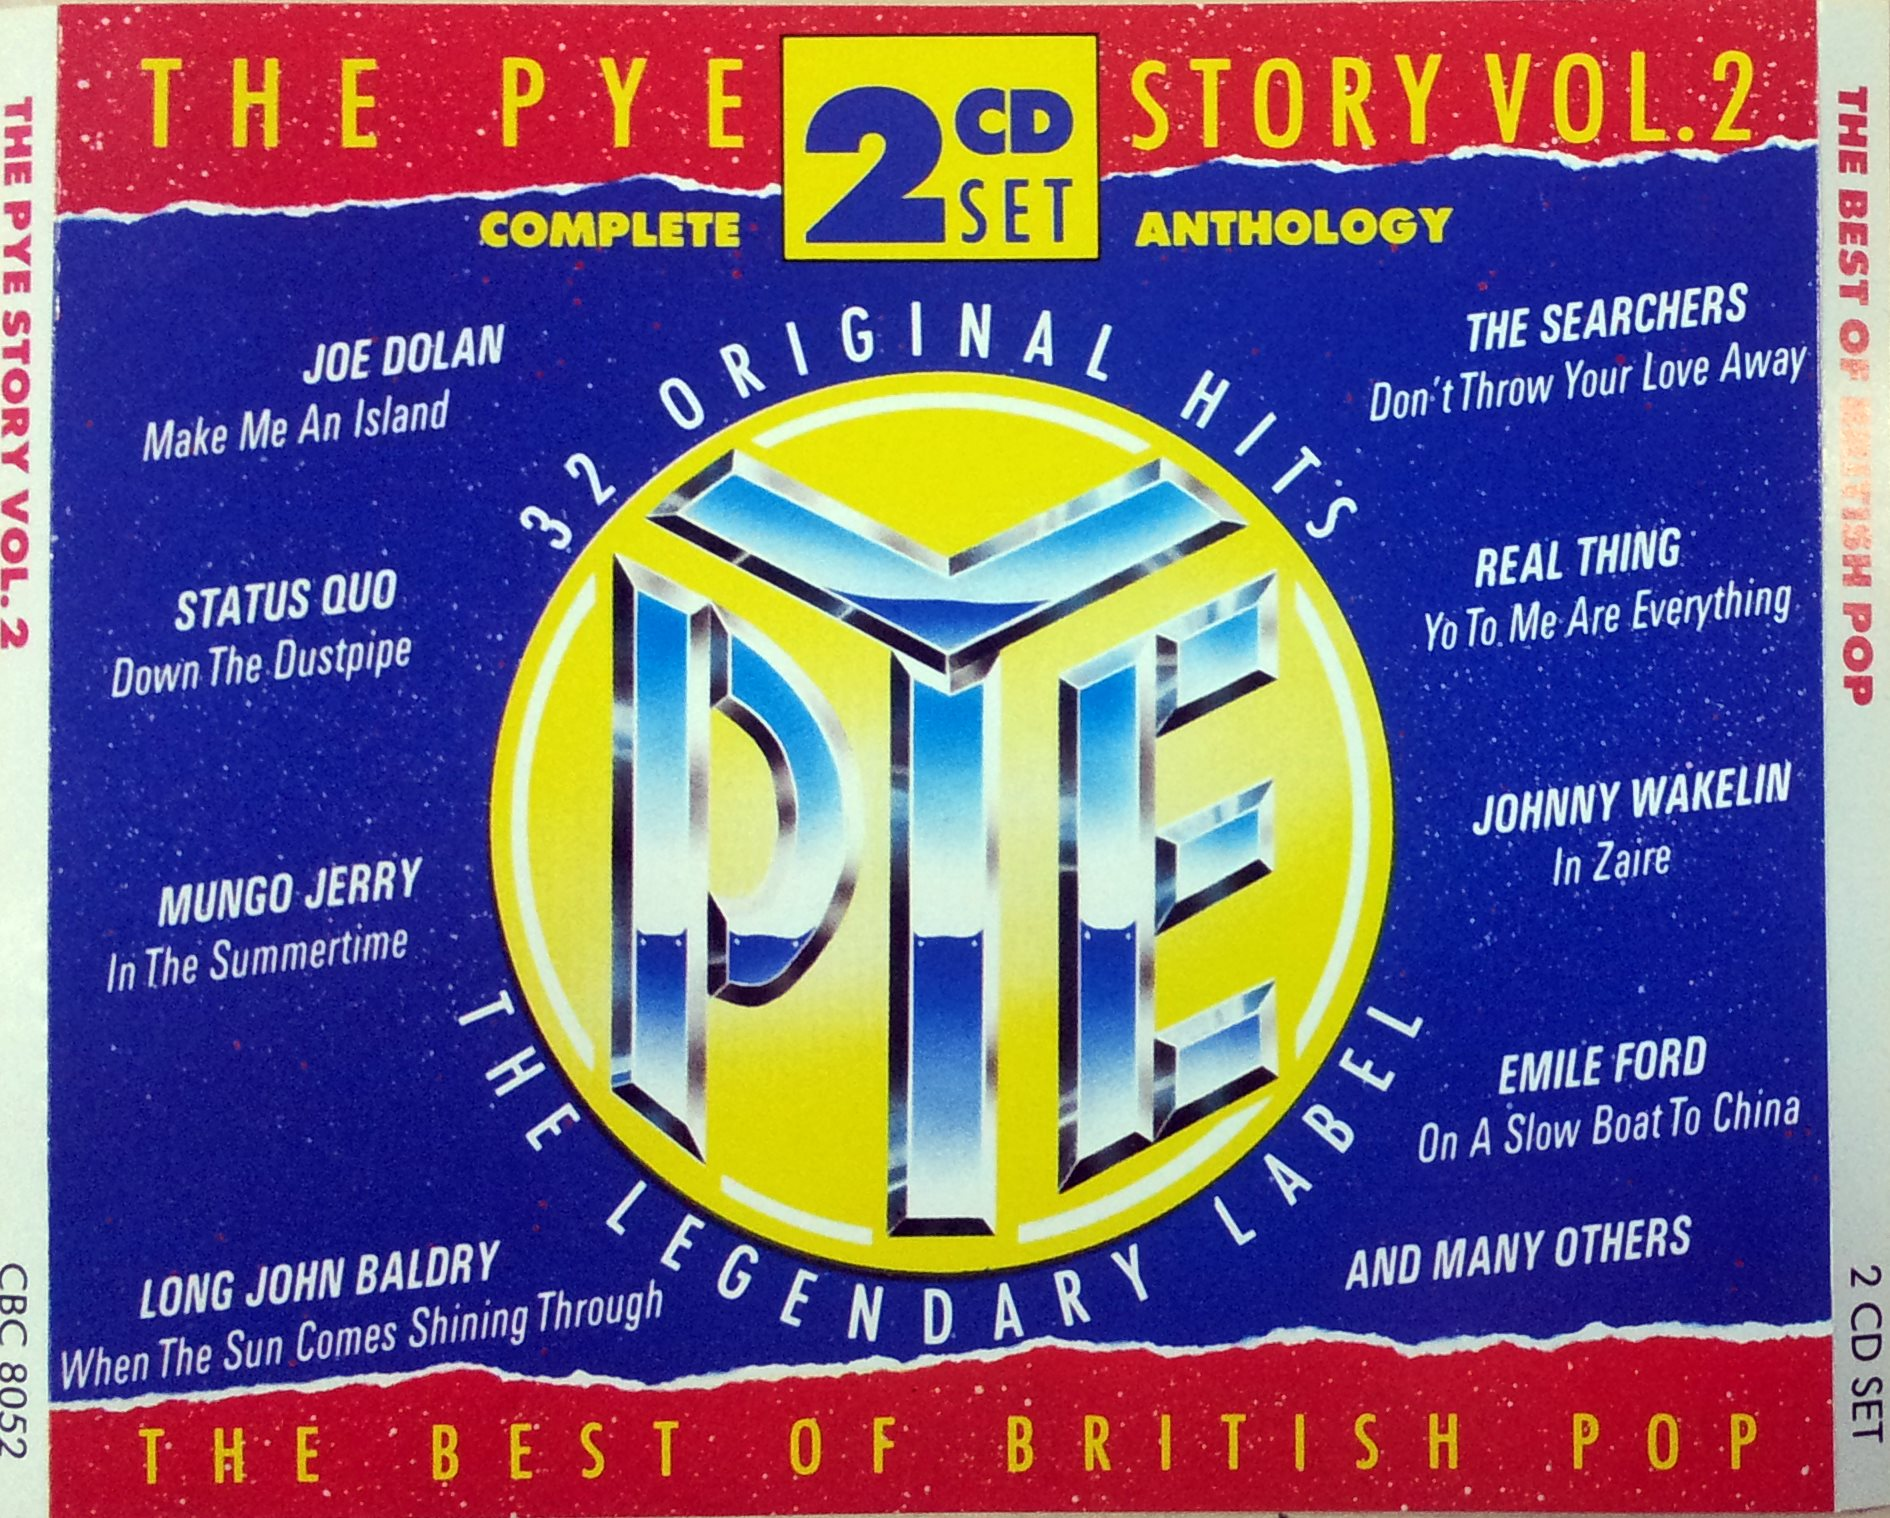 The Pye Story Vol. 2 - The Best of British Pop